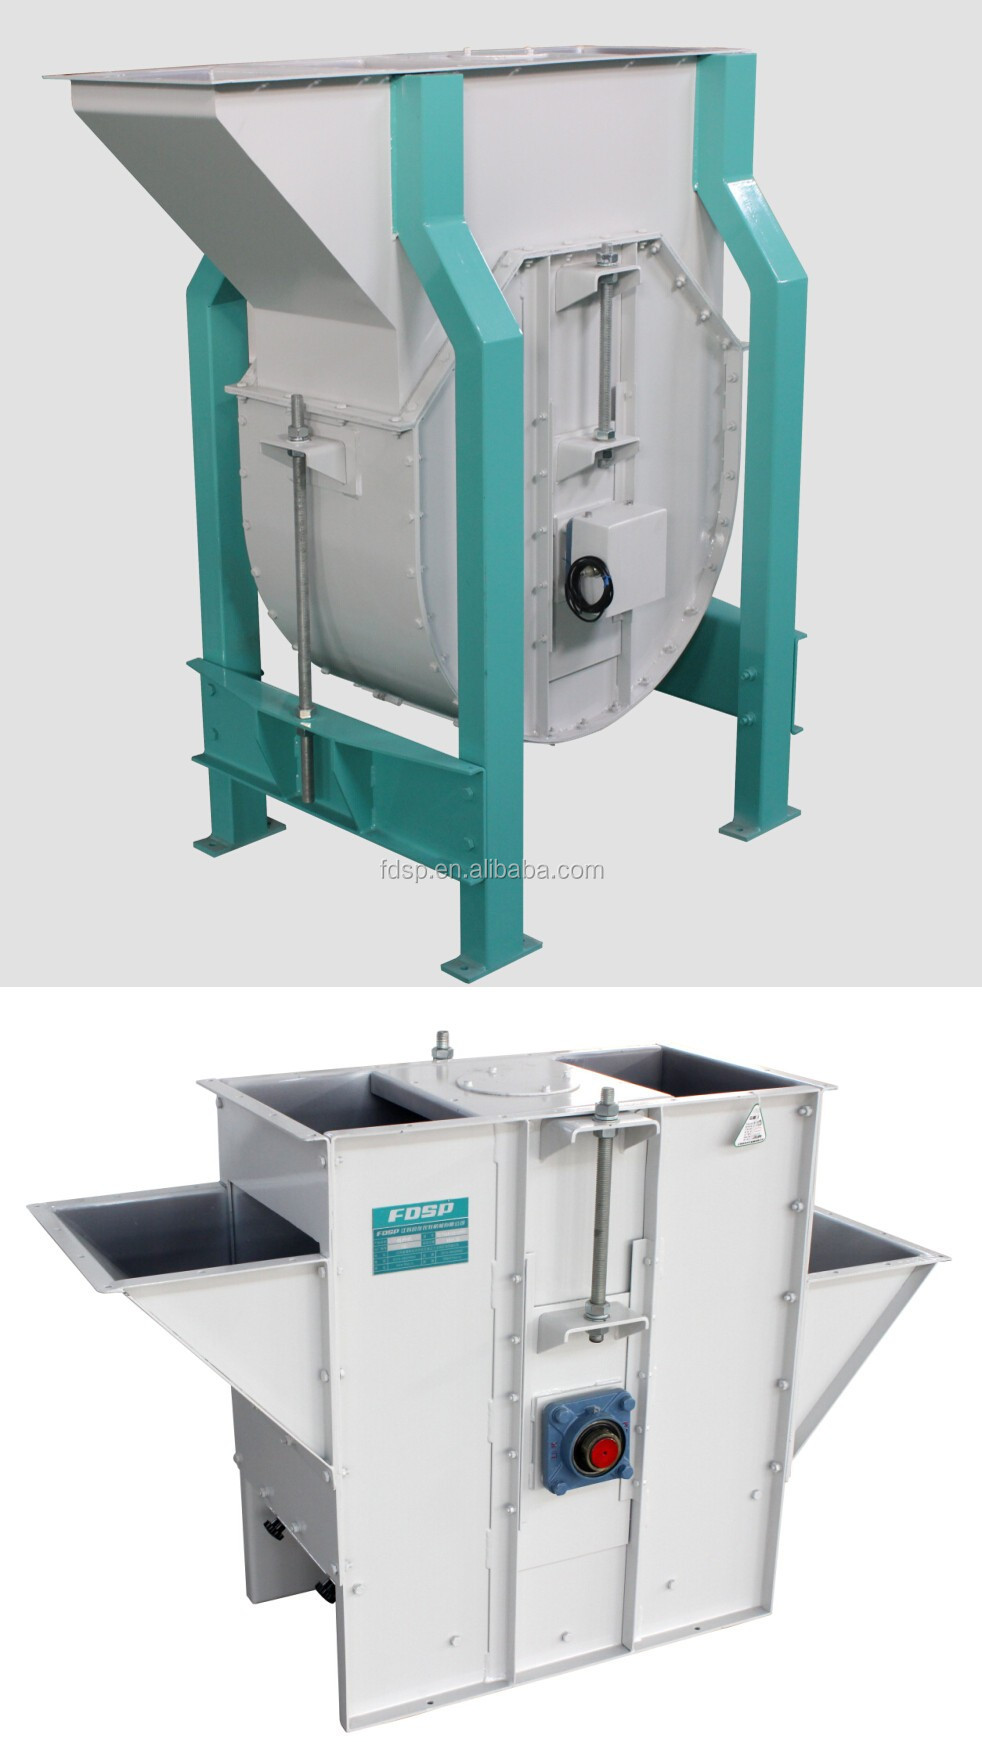 Bucket elevators for material conveying and transporting in industries